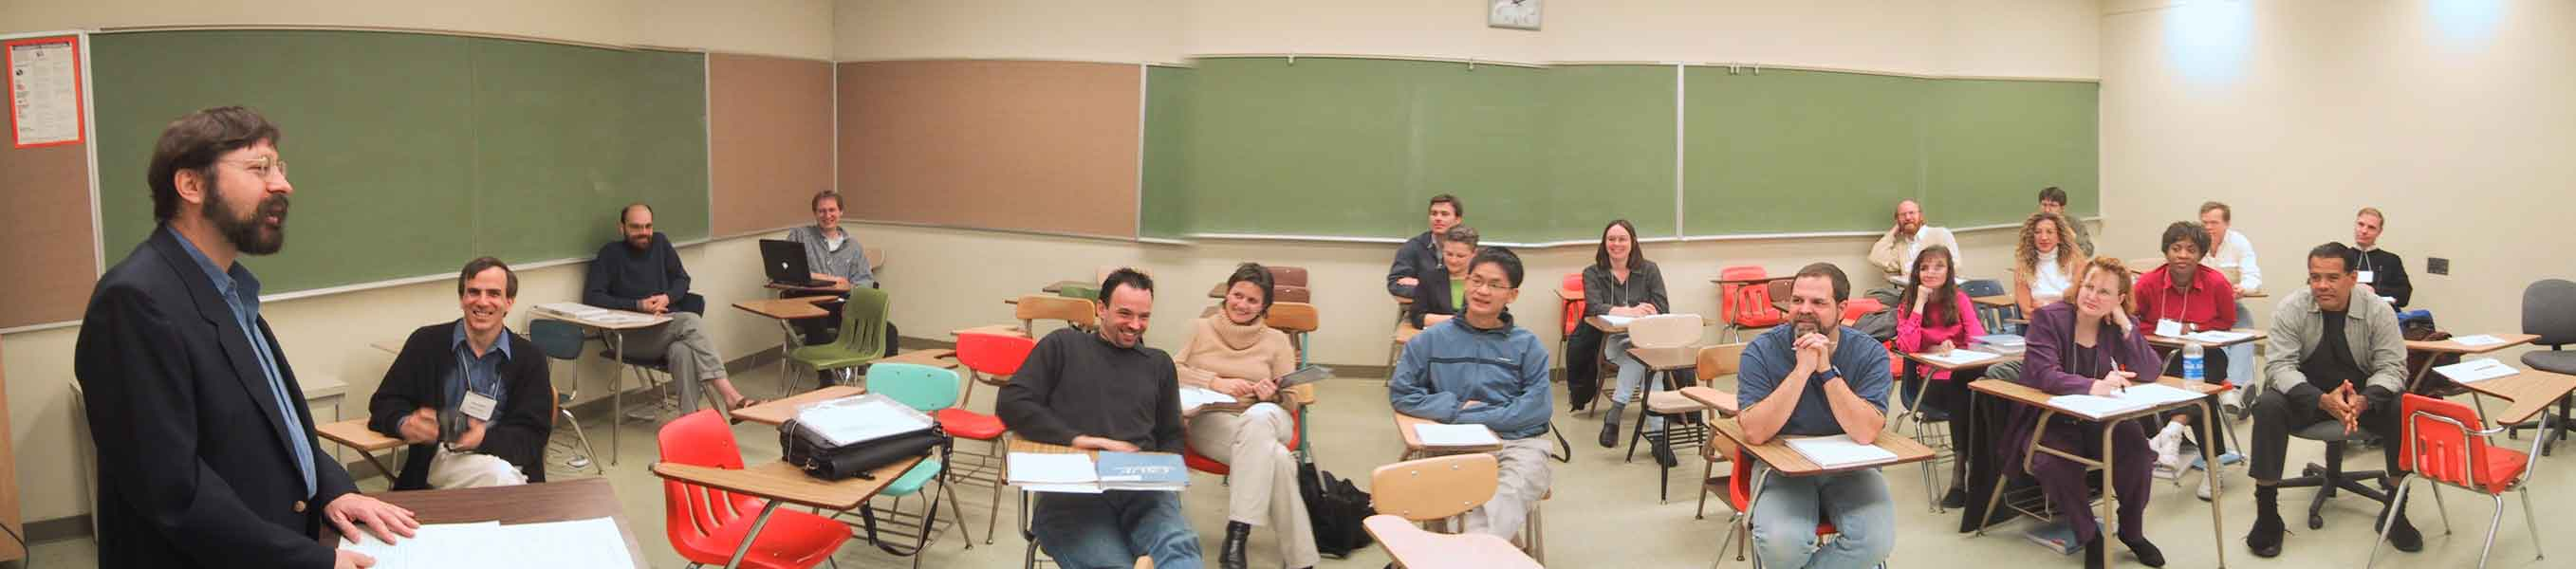 picture of ATI workshop Jan 2002